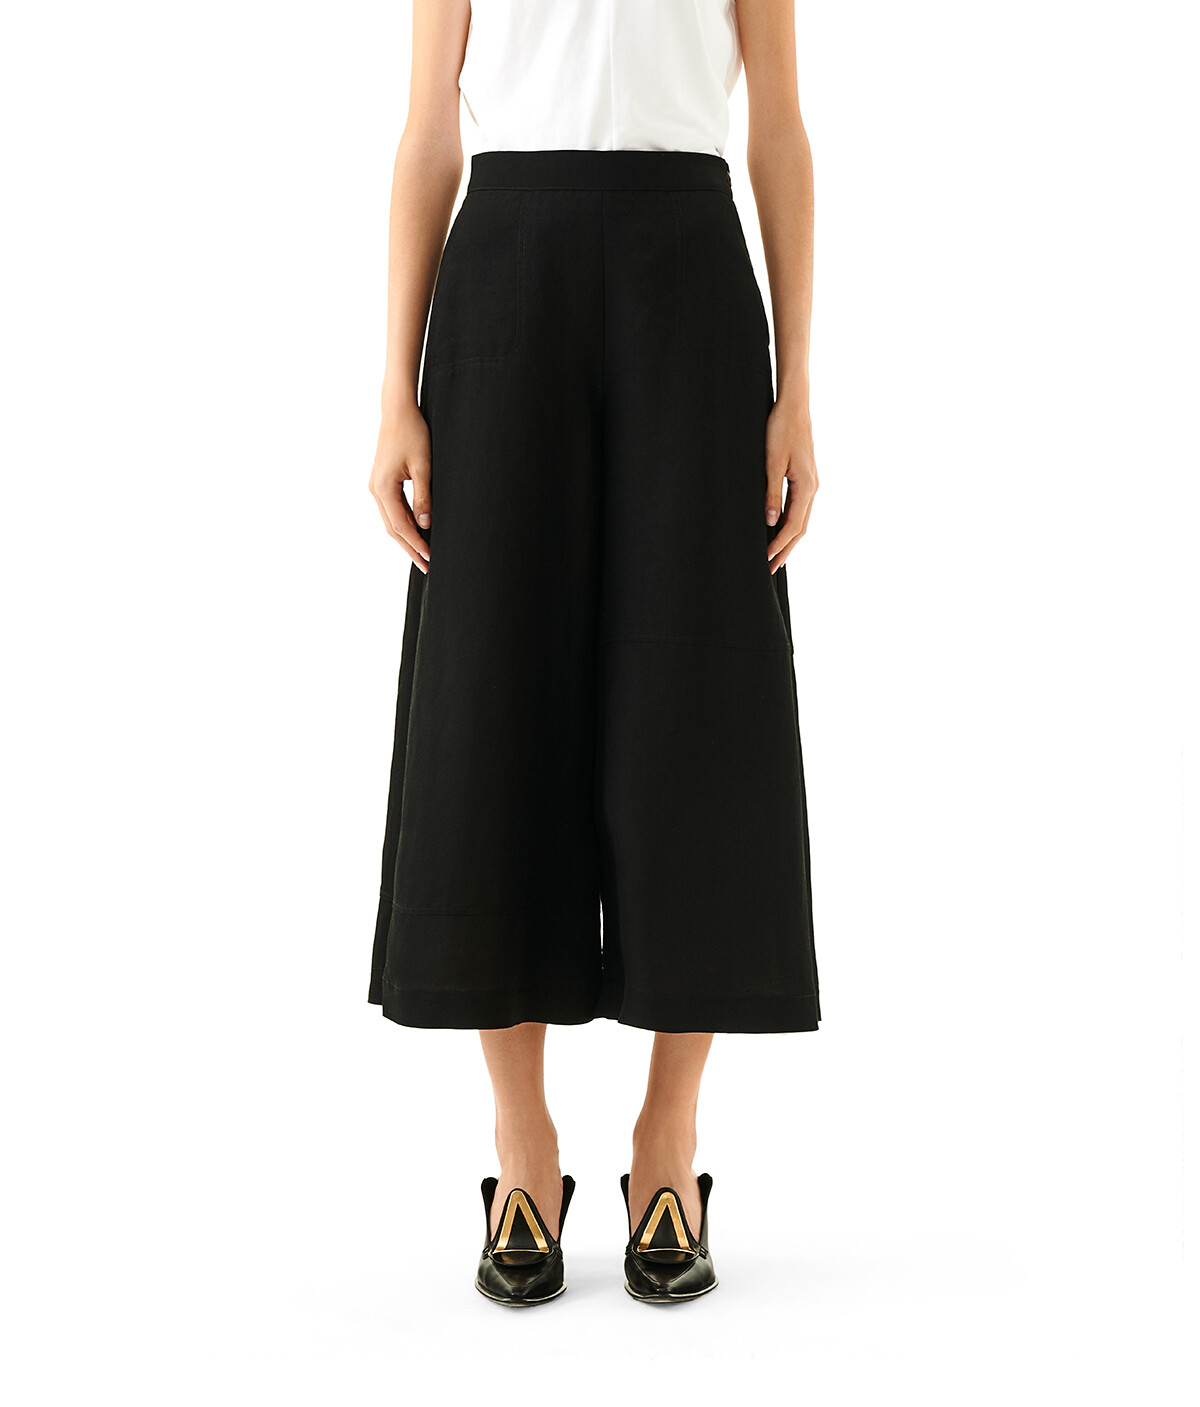 LOEWE Culotte Trousers Black/White front